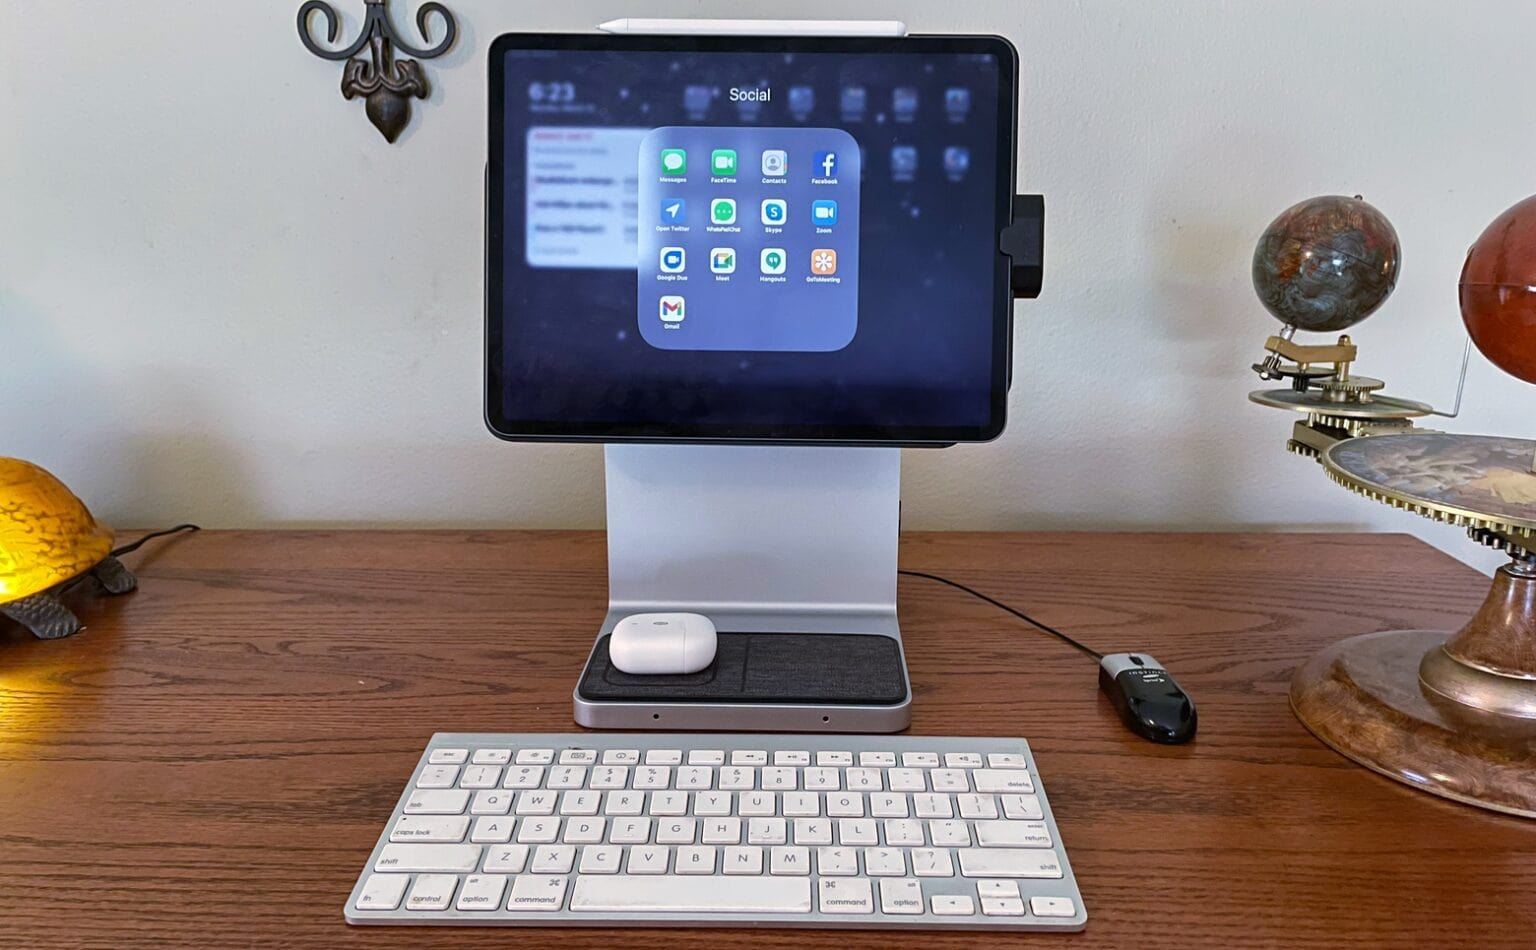 Kensington StudioDock iPad Docking Station review